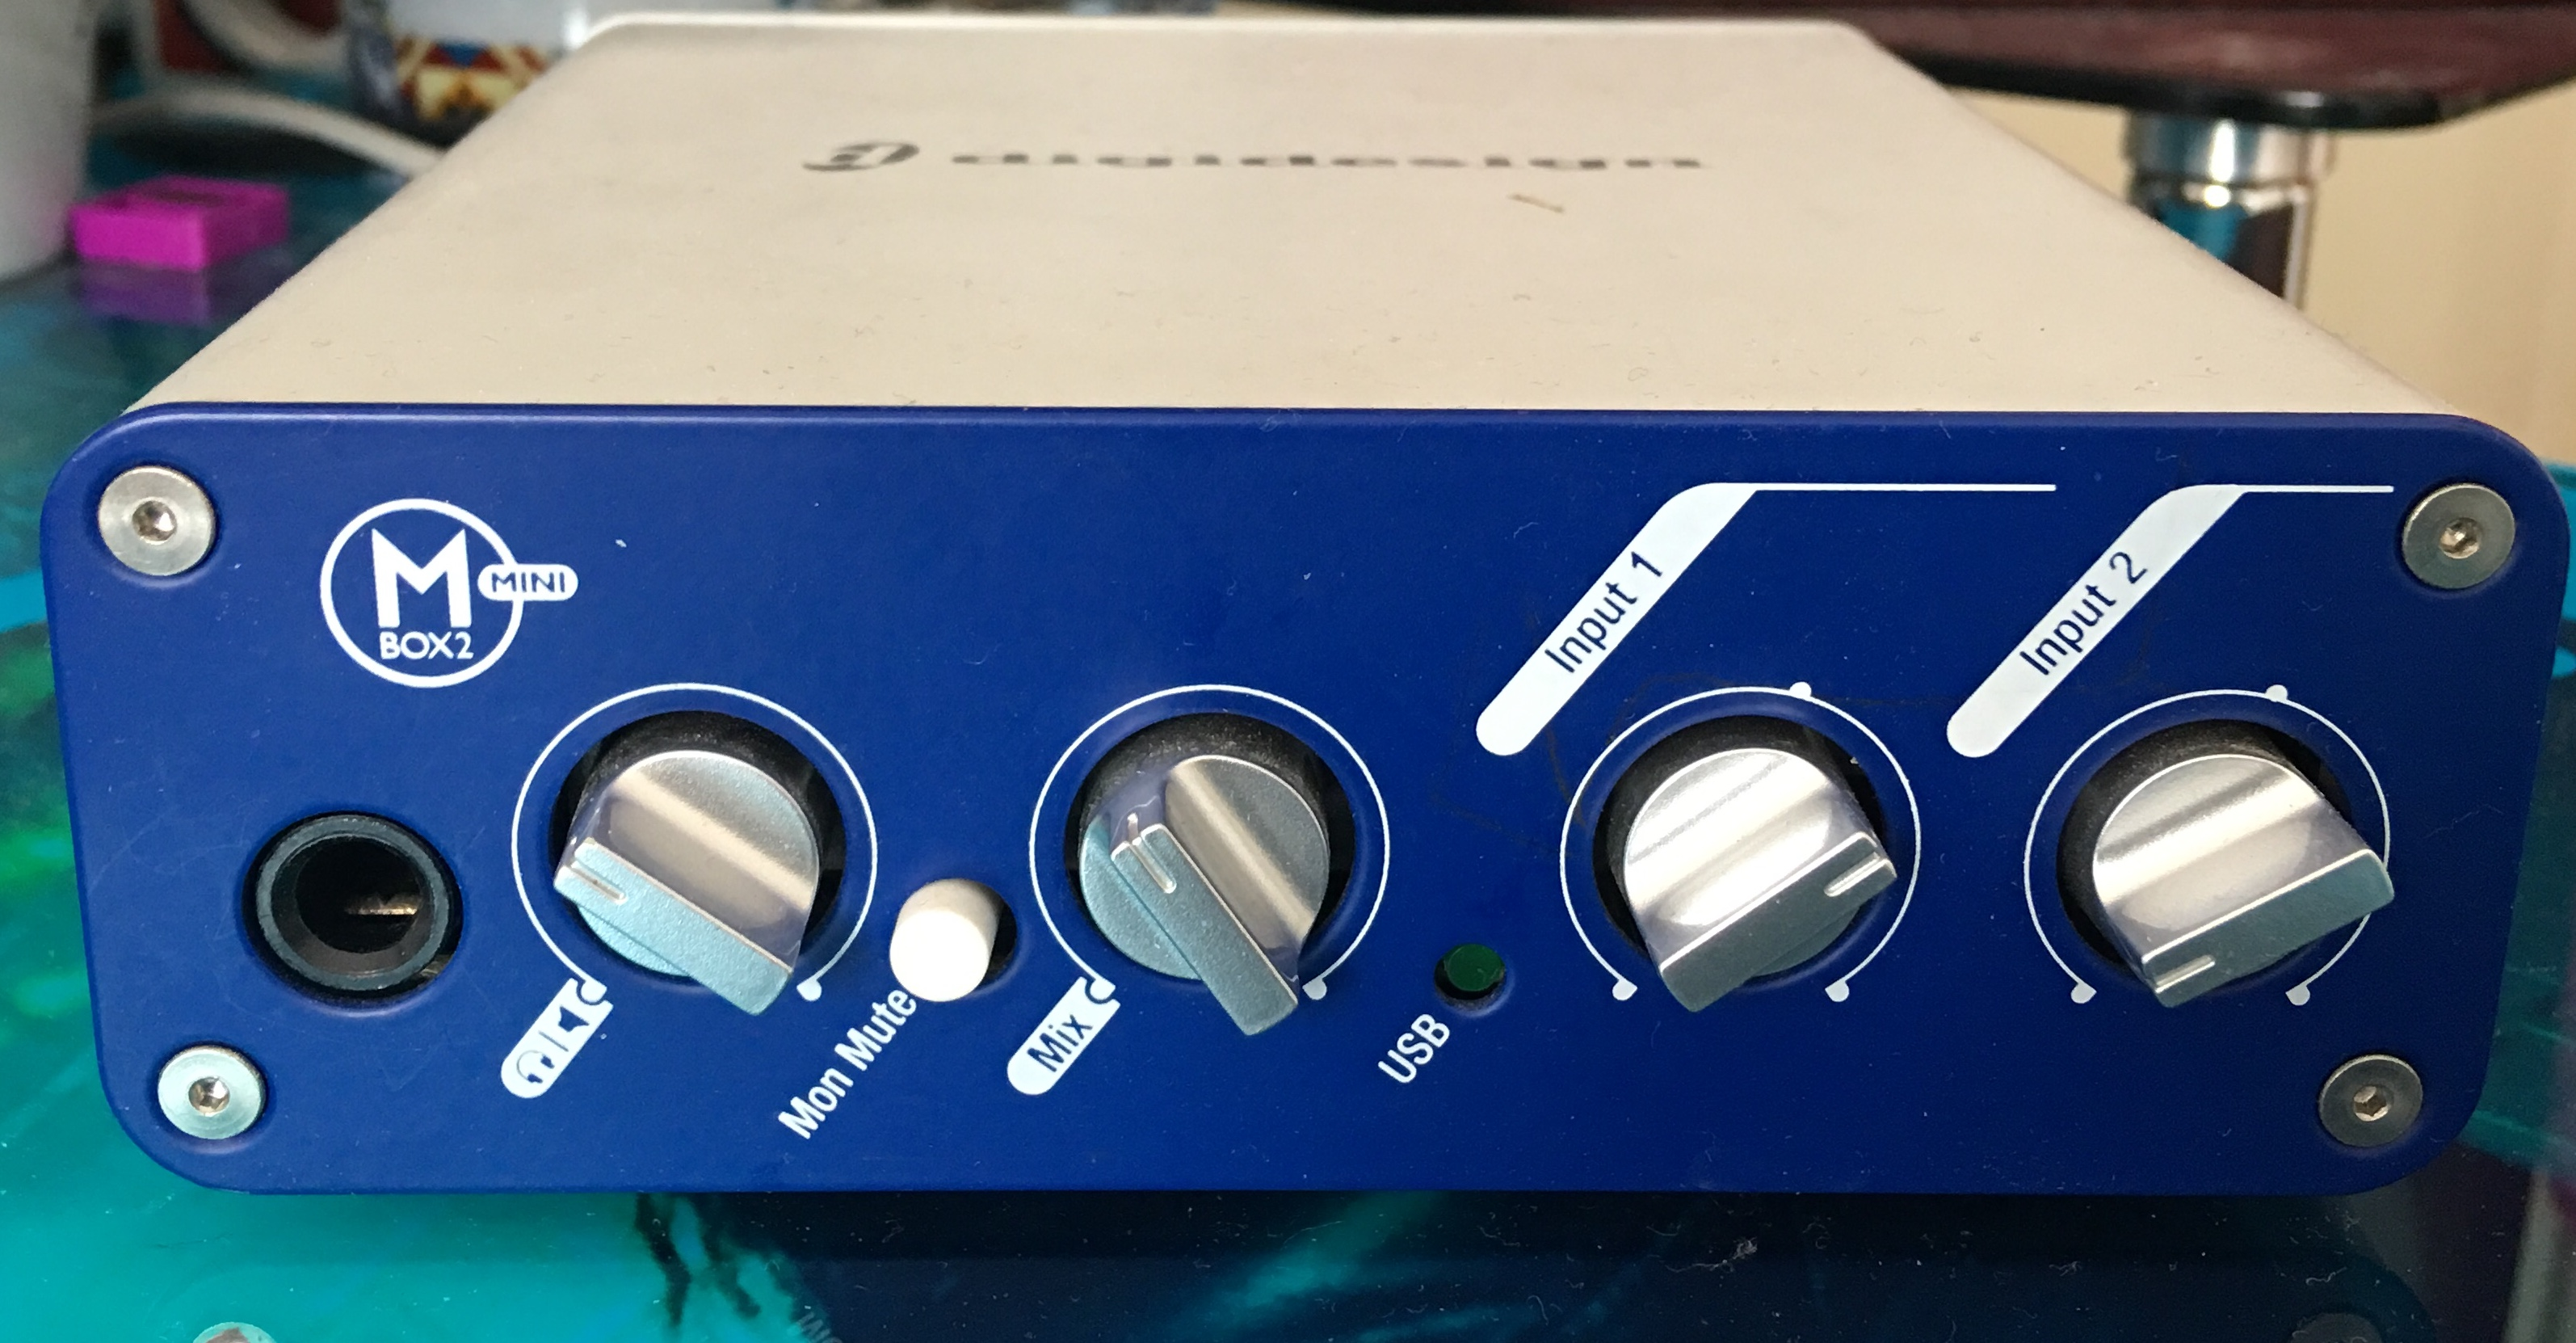 digidesign mbox 2 mini garageband driver